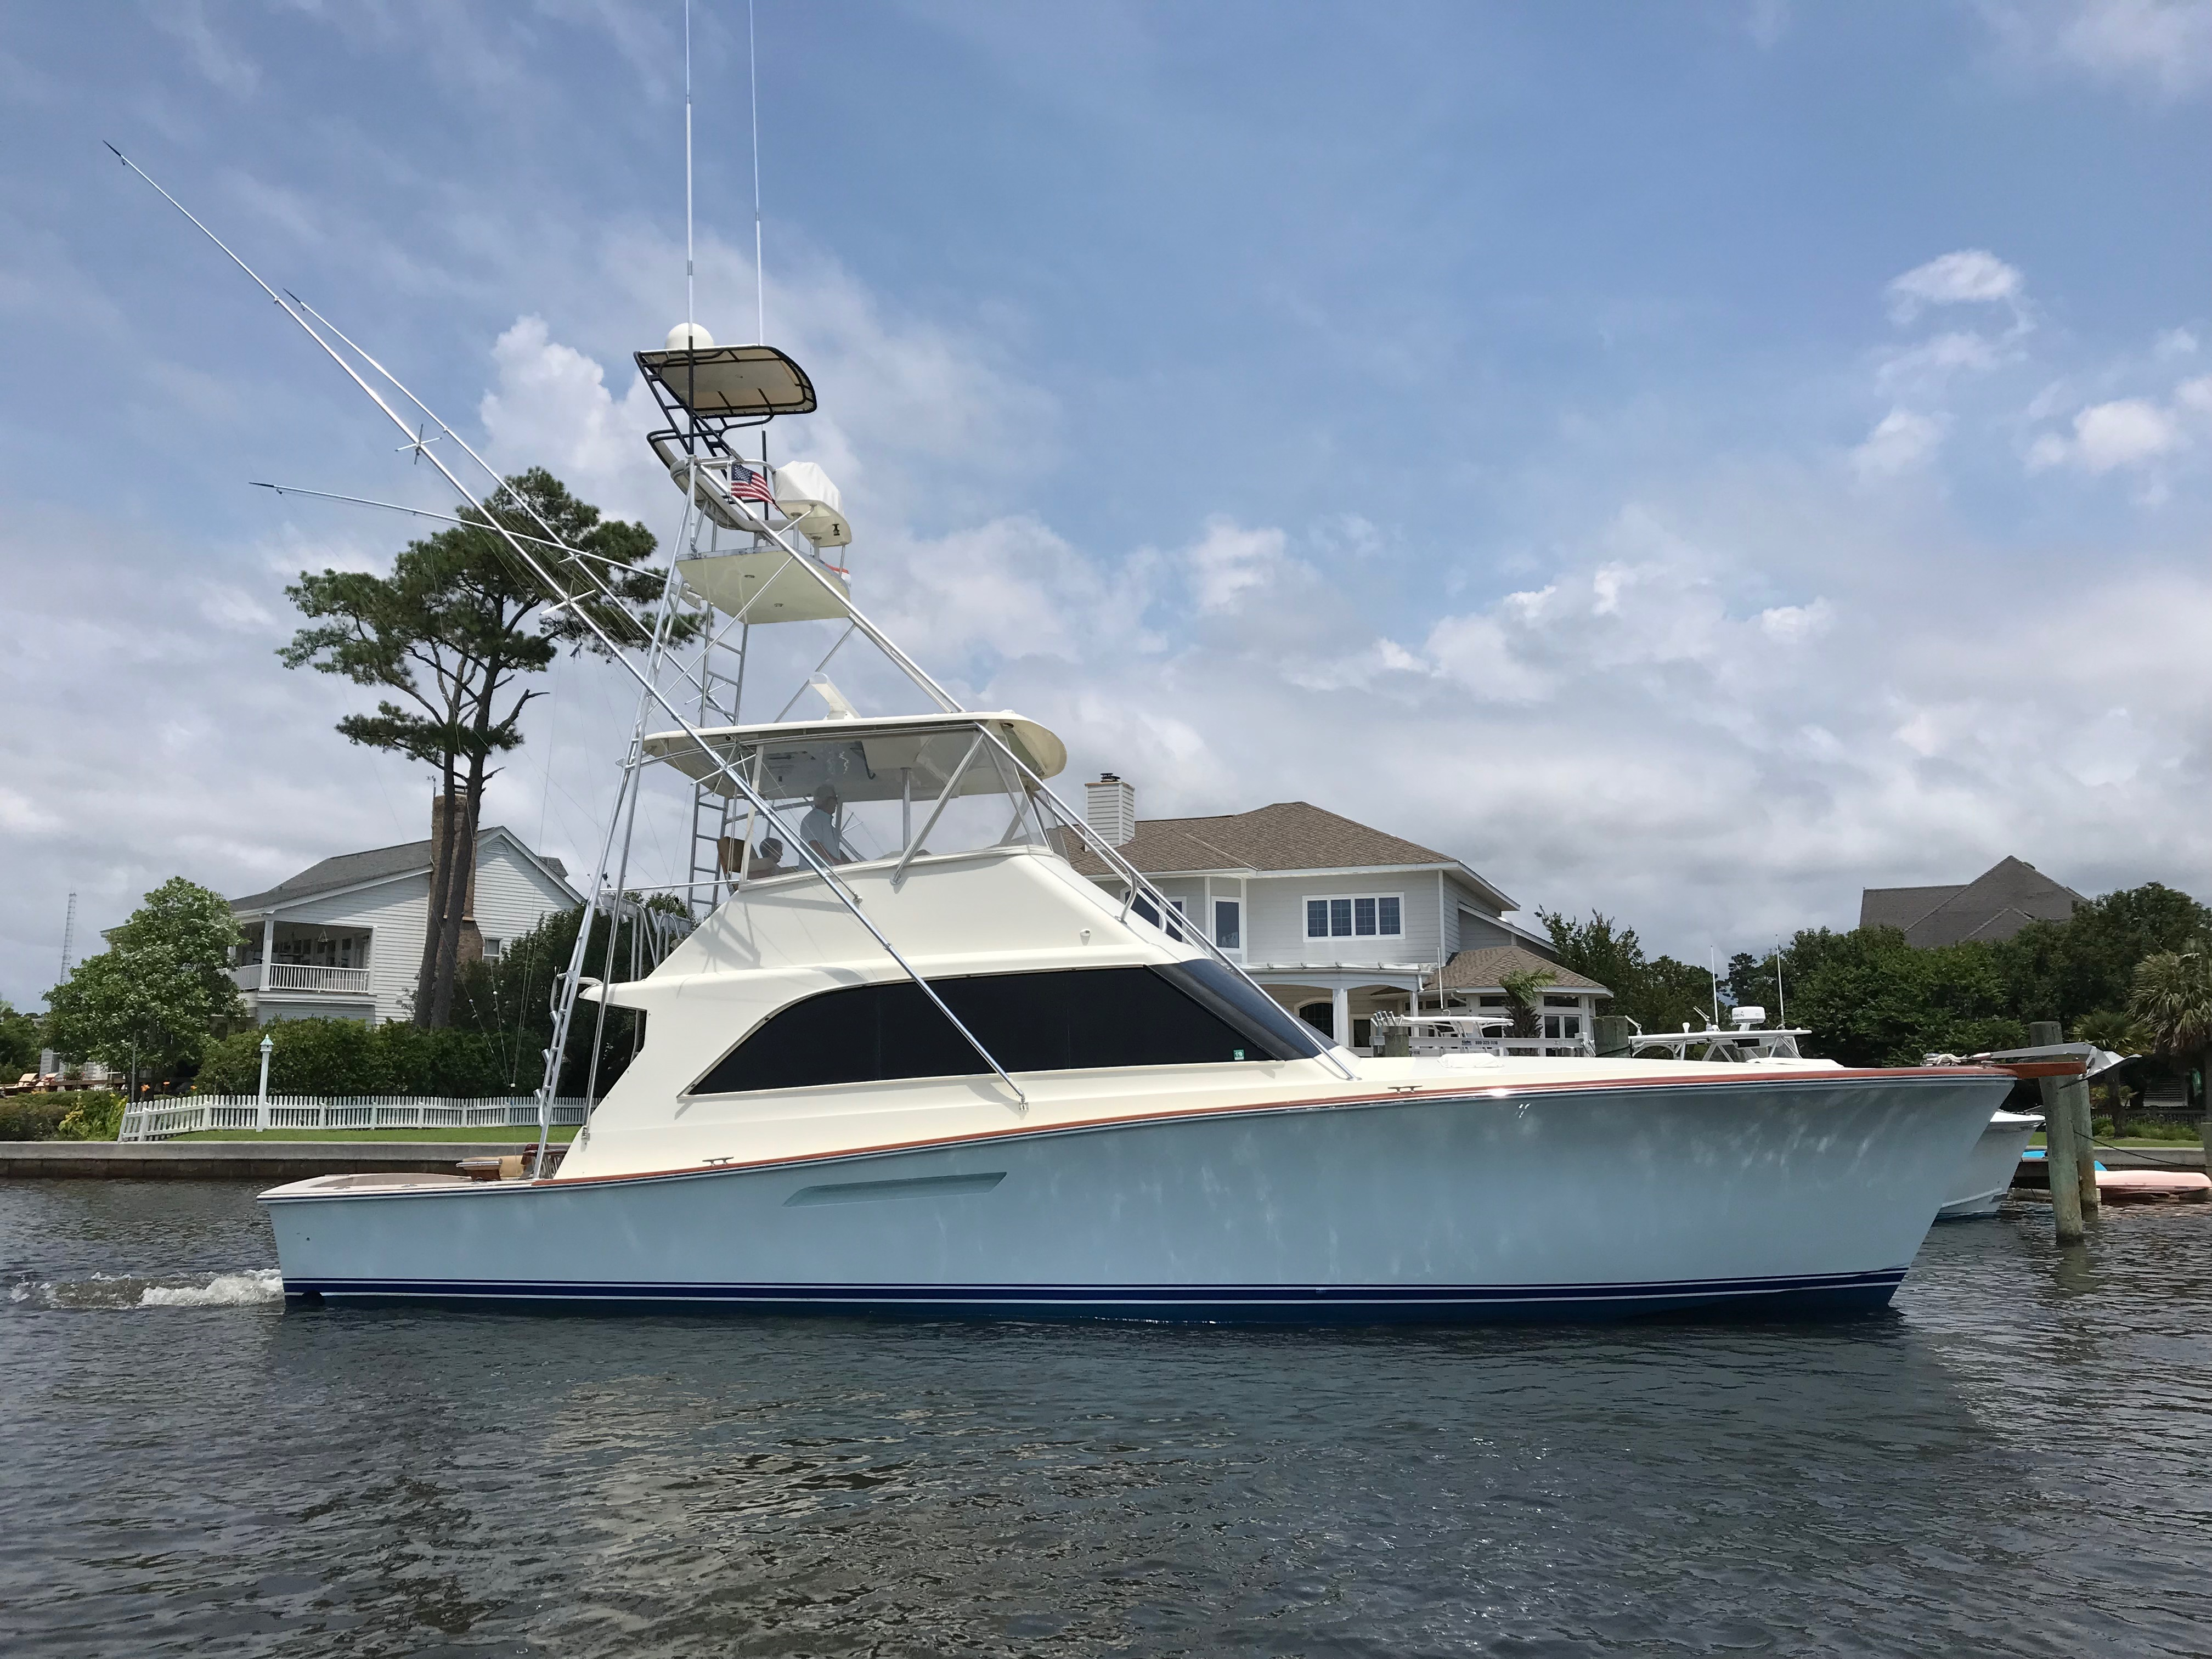 Page 1 of 208 - Boats for sale in North Carolina - BoatTrader.com